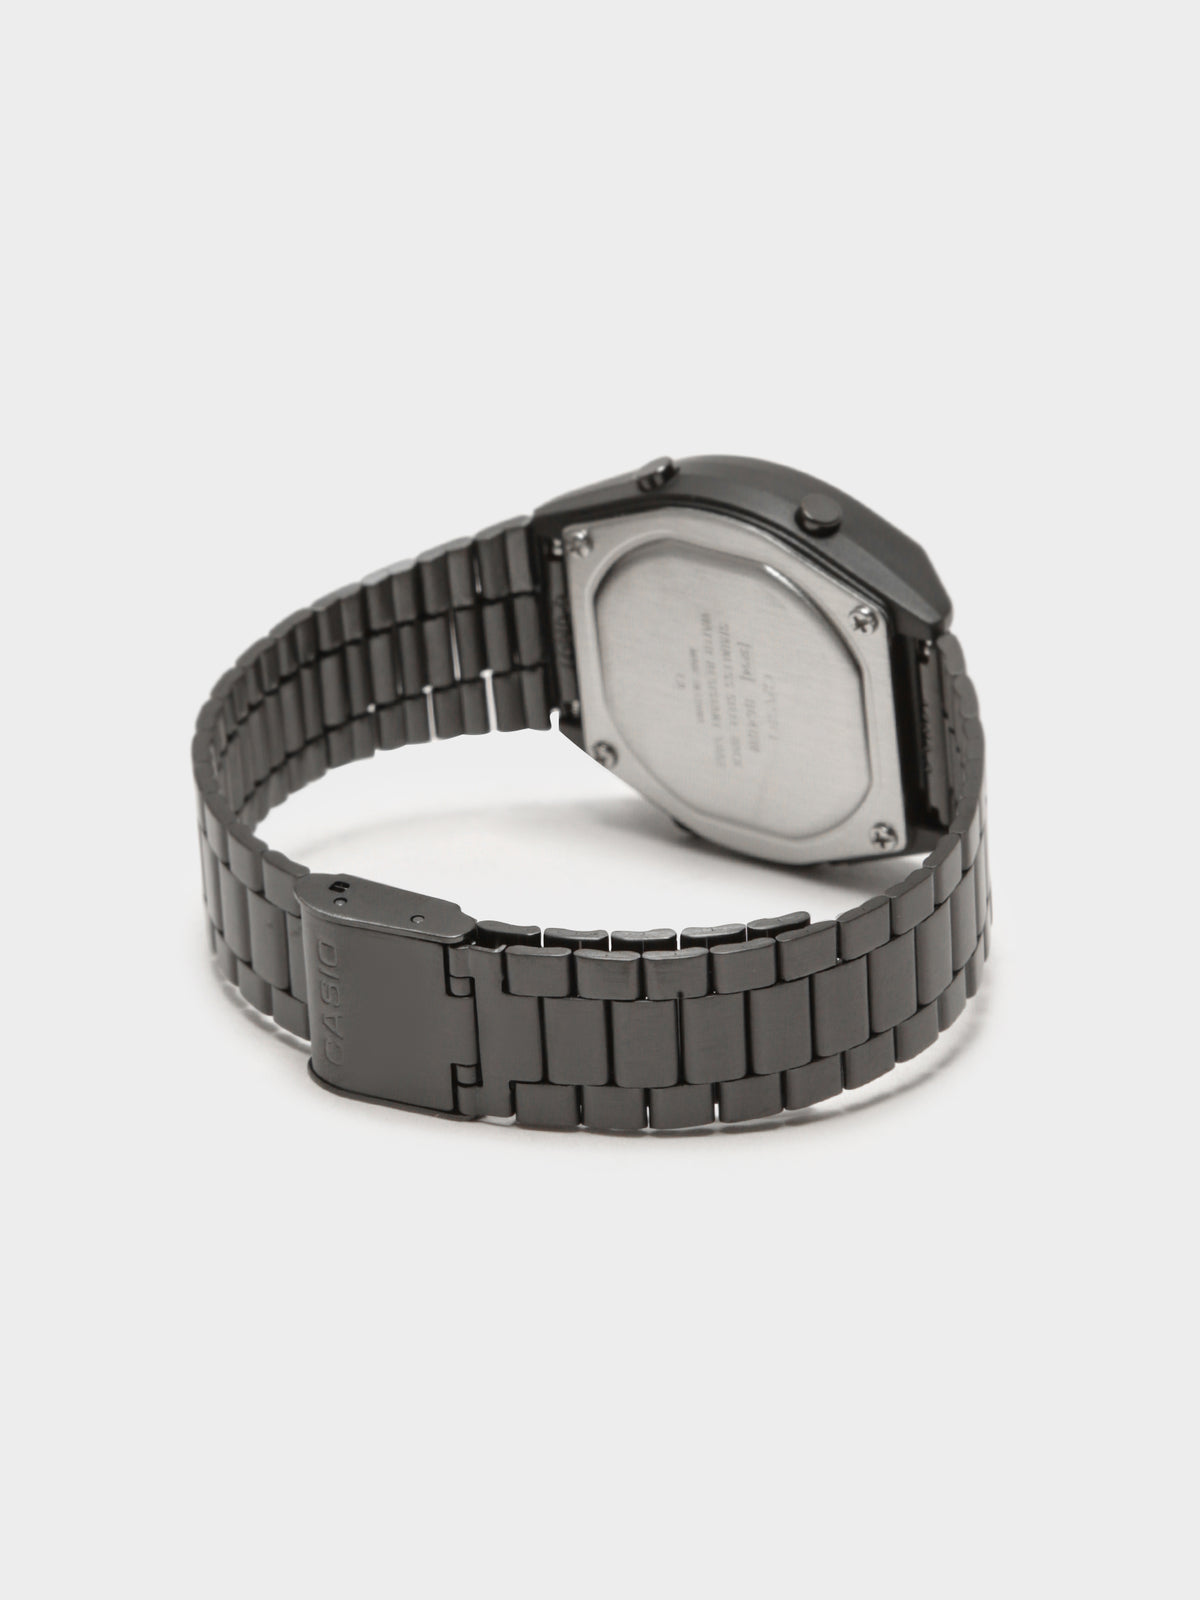 Unisex Vintage Digital Watch in Black